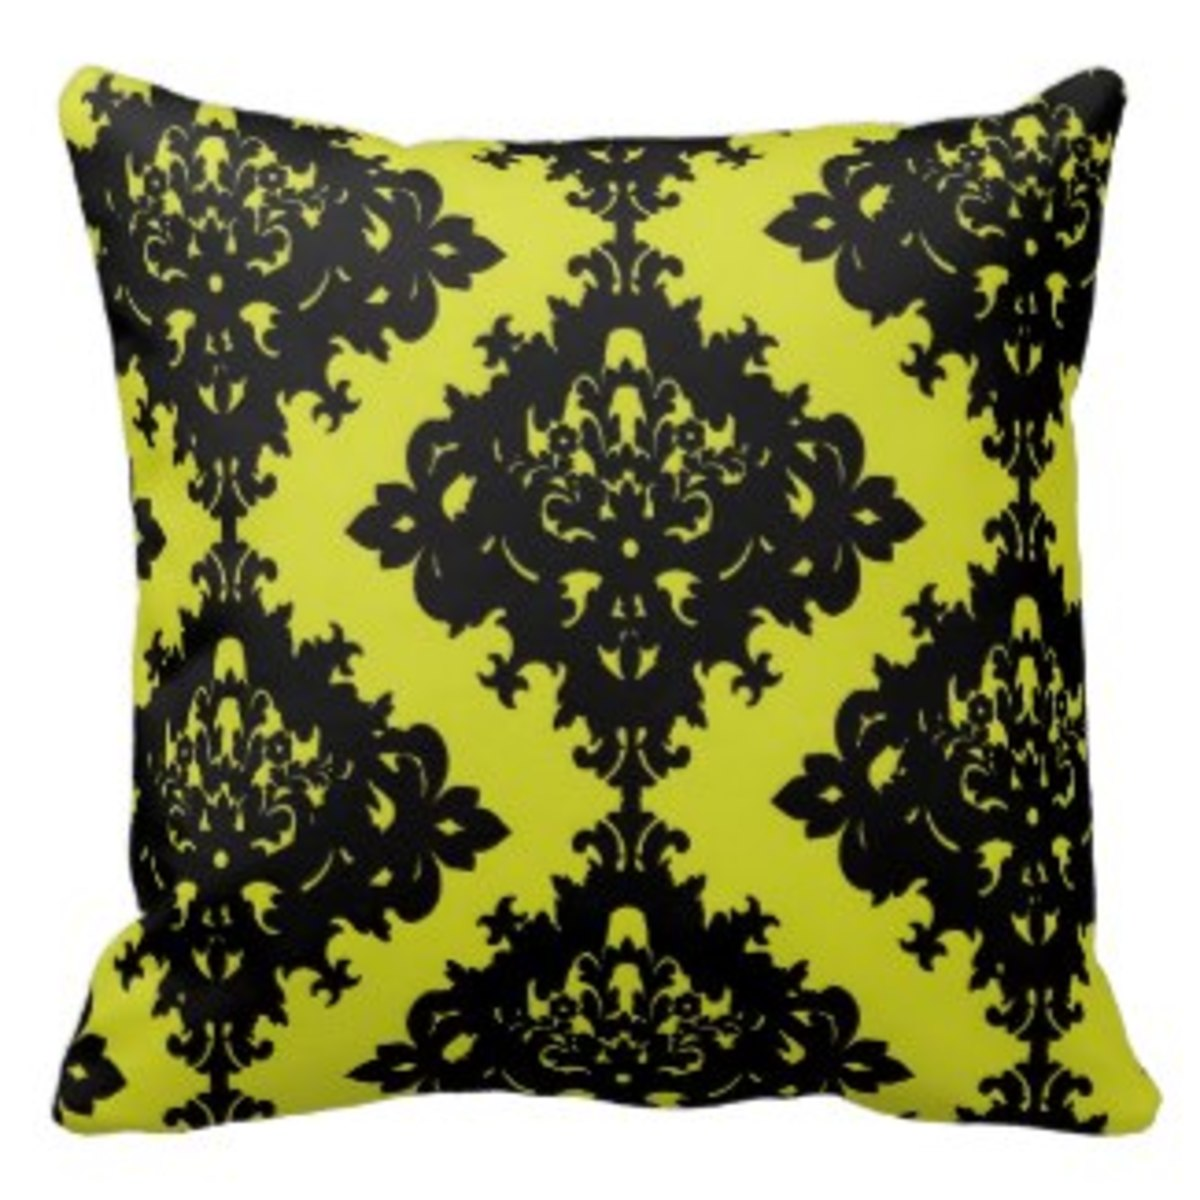 Chartreuse and black elegant diamond damask design throw pillow